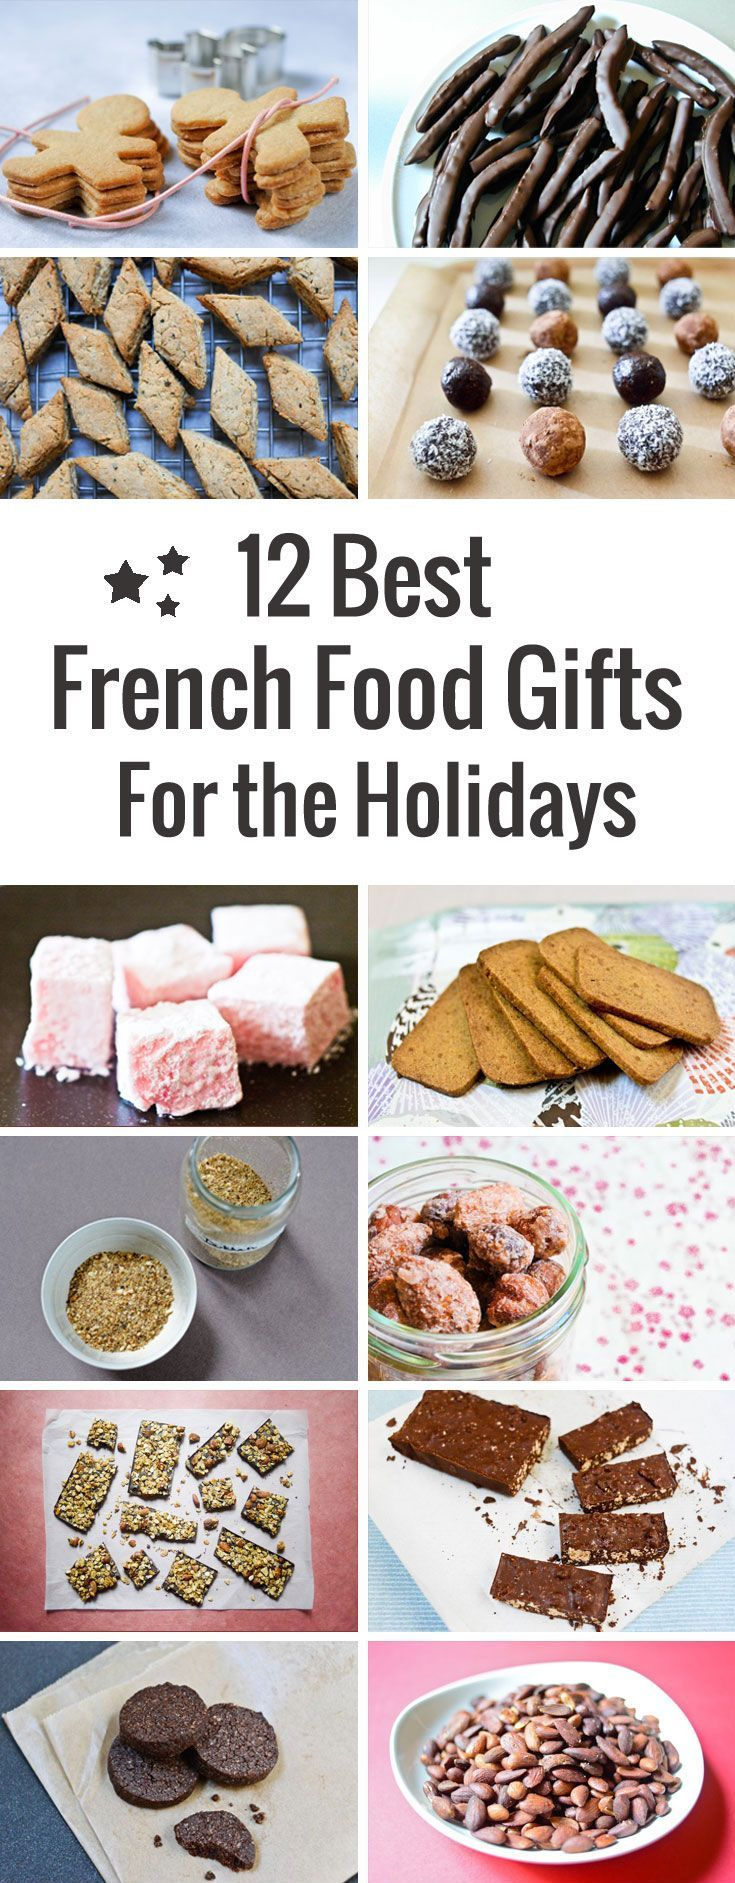 Making your own edible gifts should not add to your holiday stress! I've handpicked some of my best food gifts, the kind that's easy and delicious.